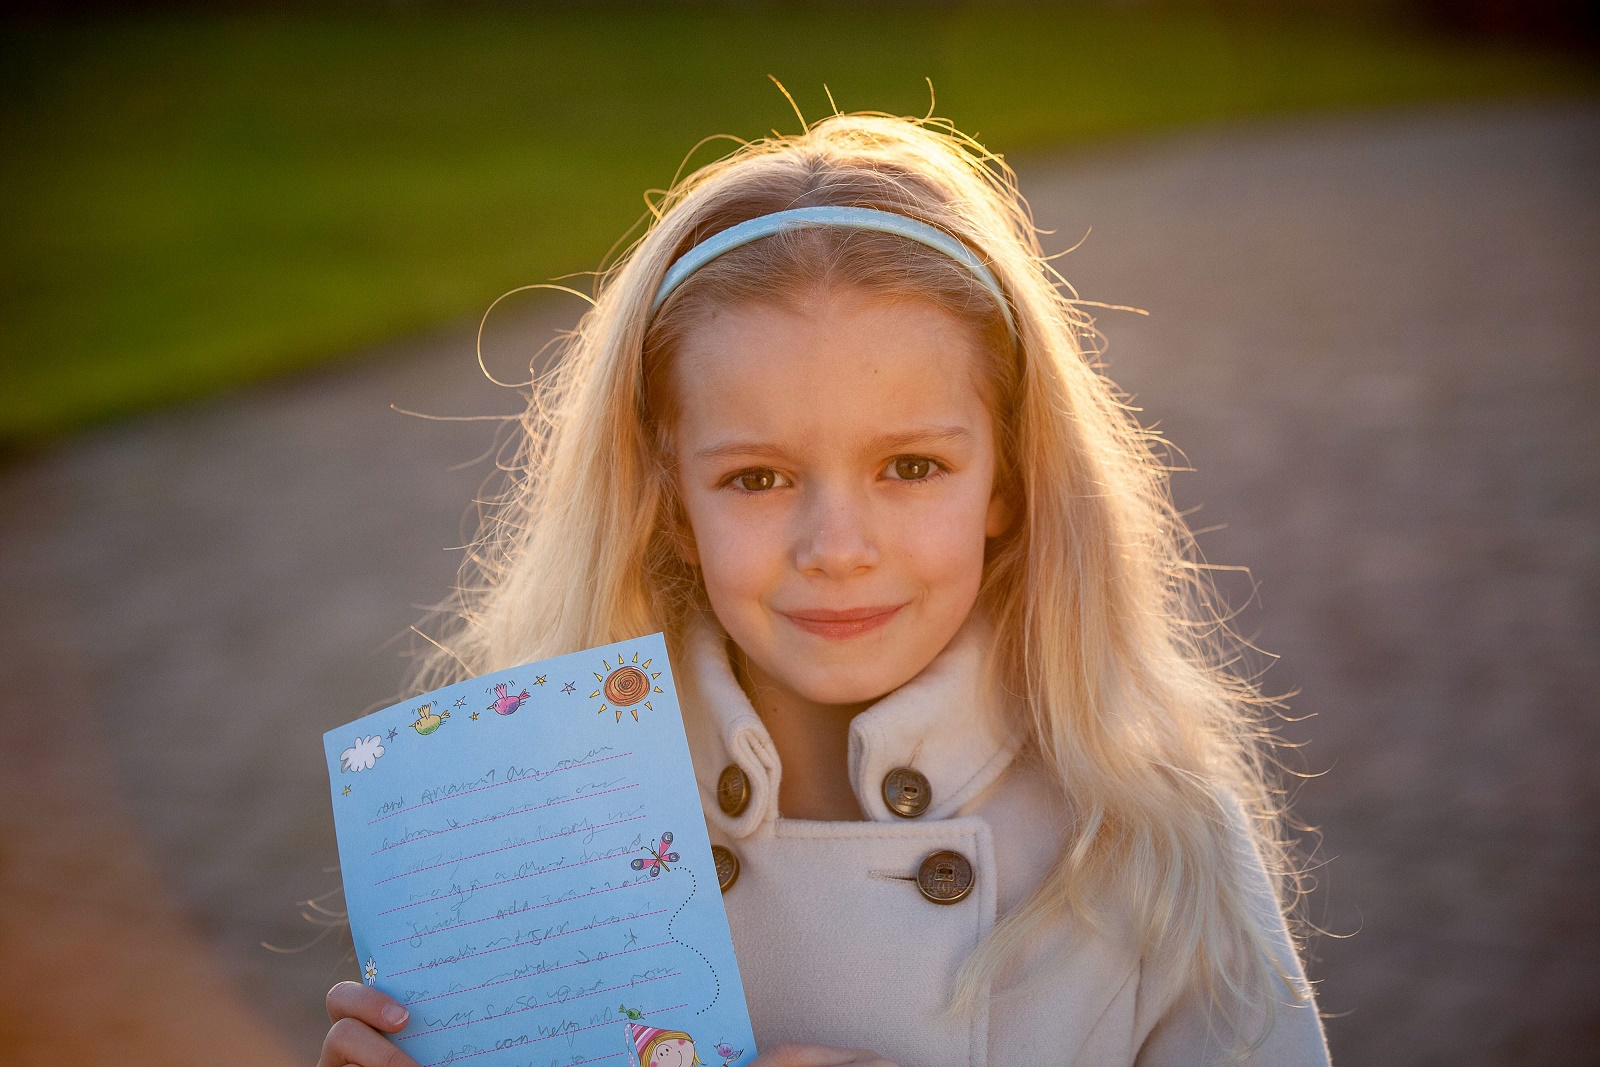 This cute girl is tackling loneliness one neighbour at a time